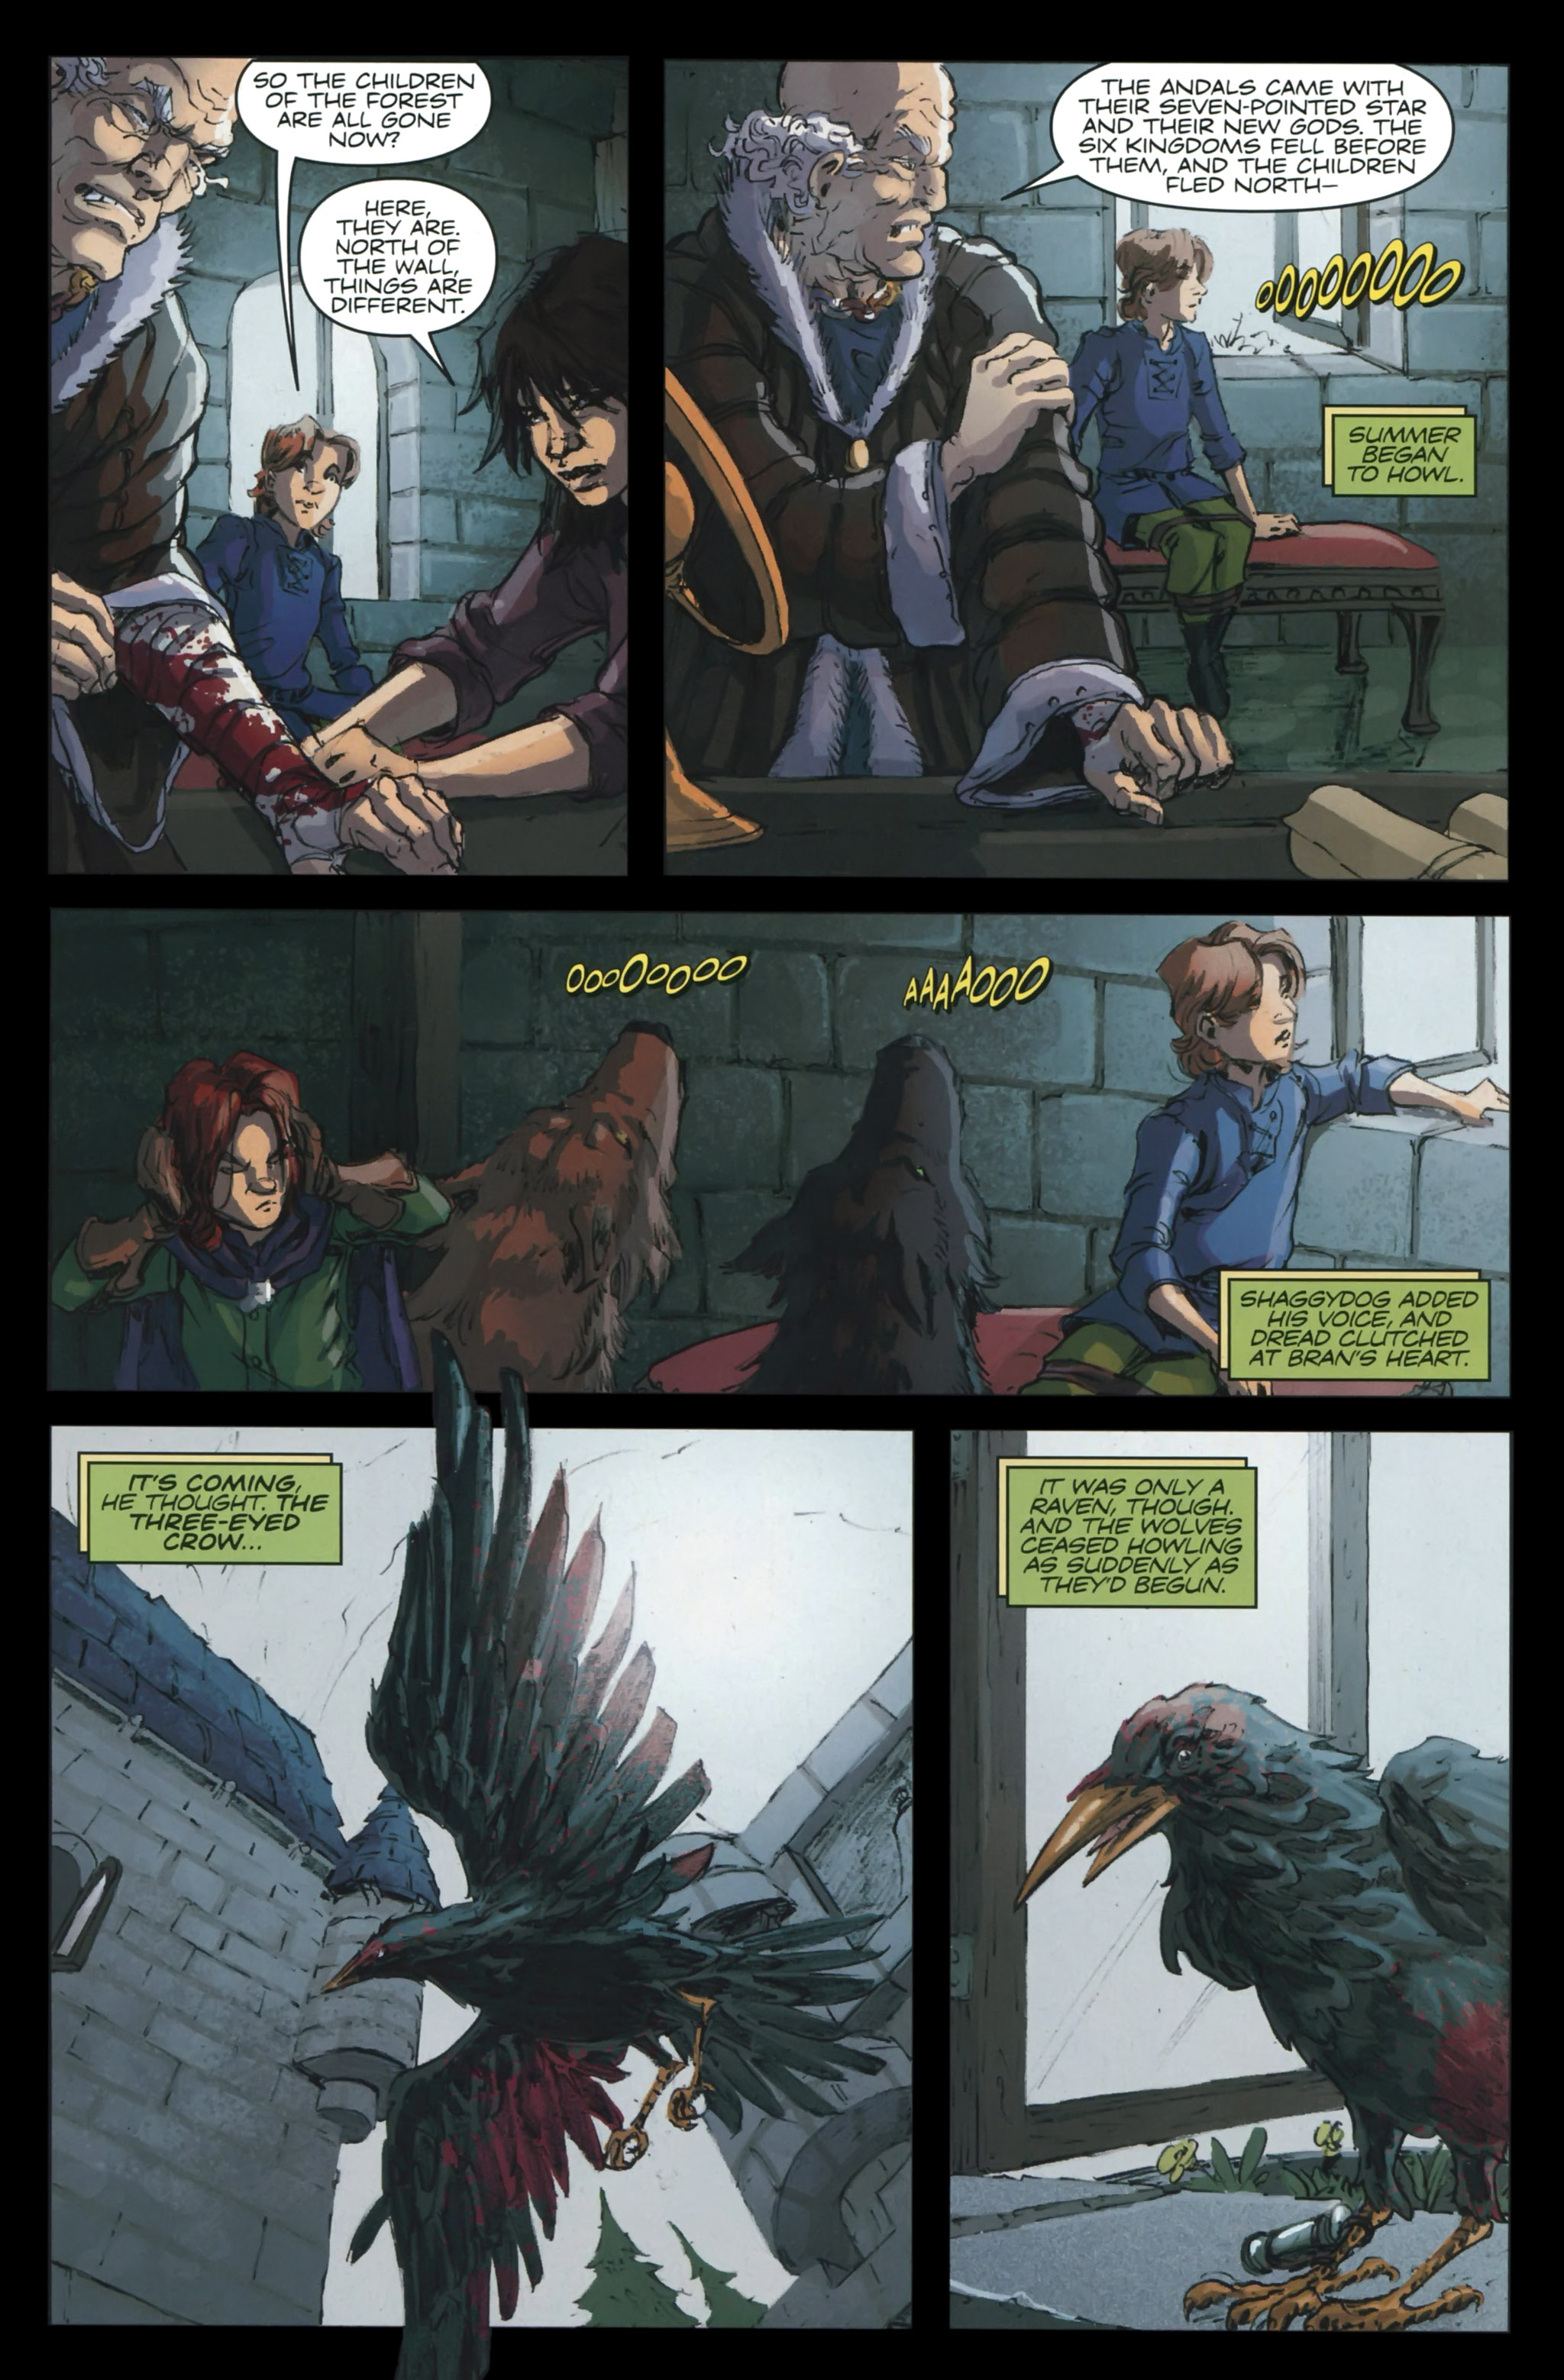 Read online A Game Of Thrones comic -  Issue #23 - 11